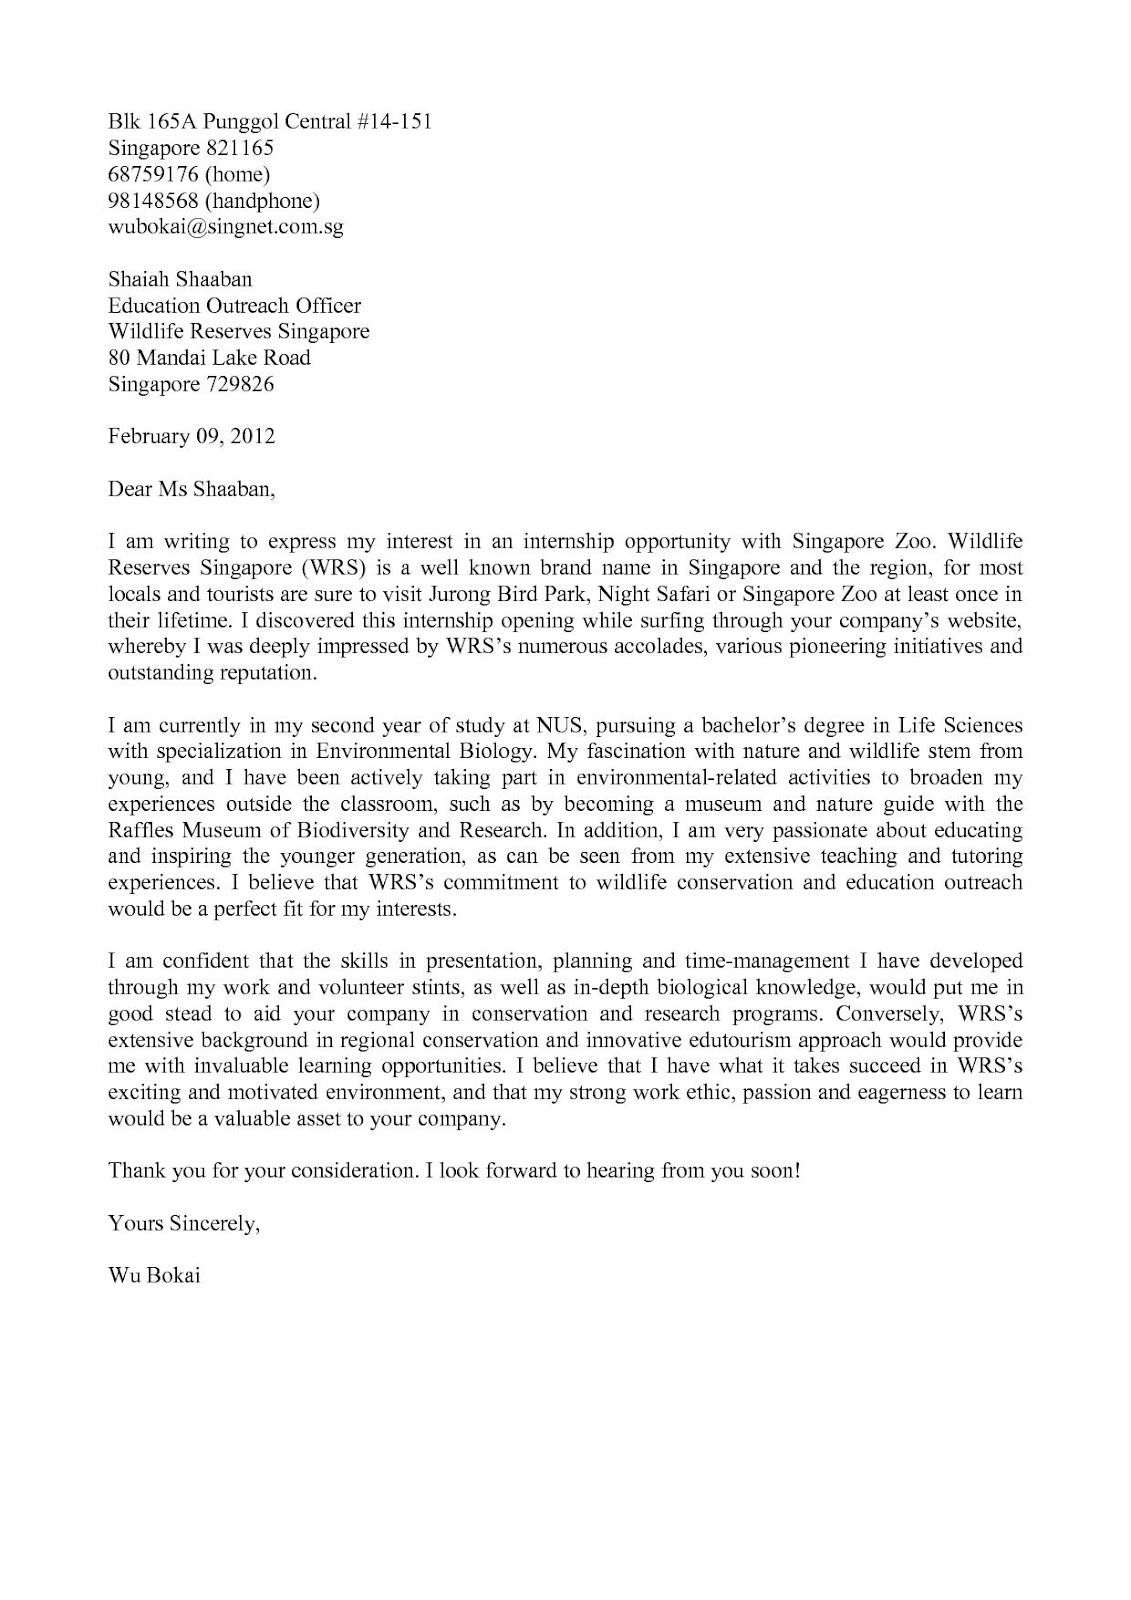 Winning Cover Letter Sample Letter Of Application Or The Application Letter Is Document